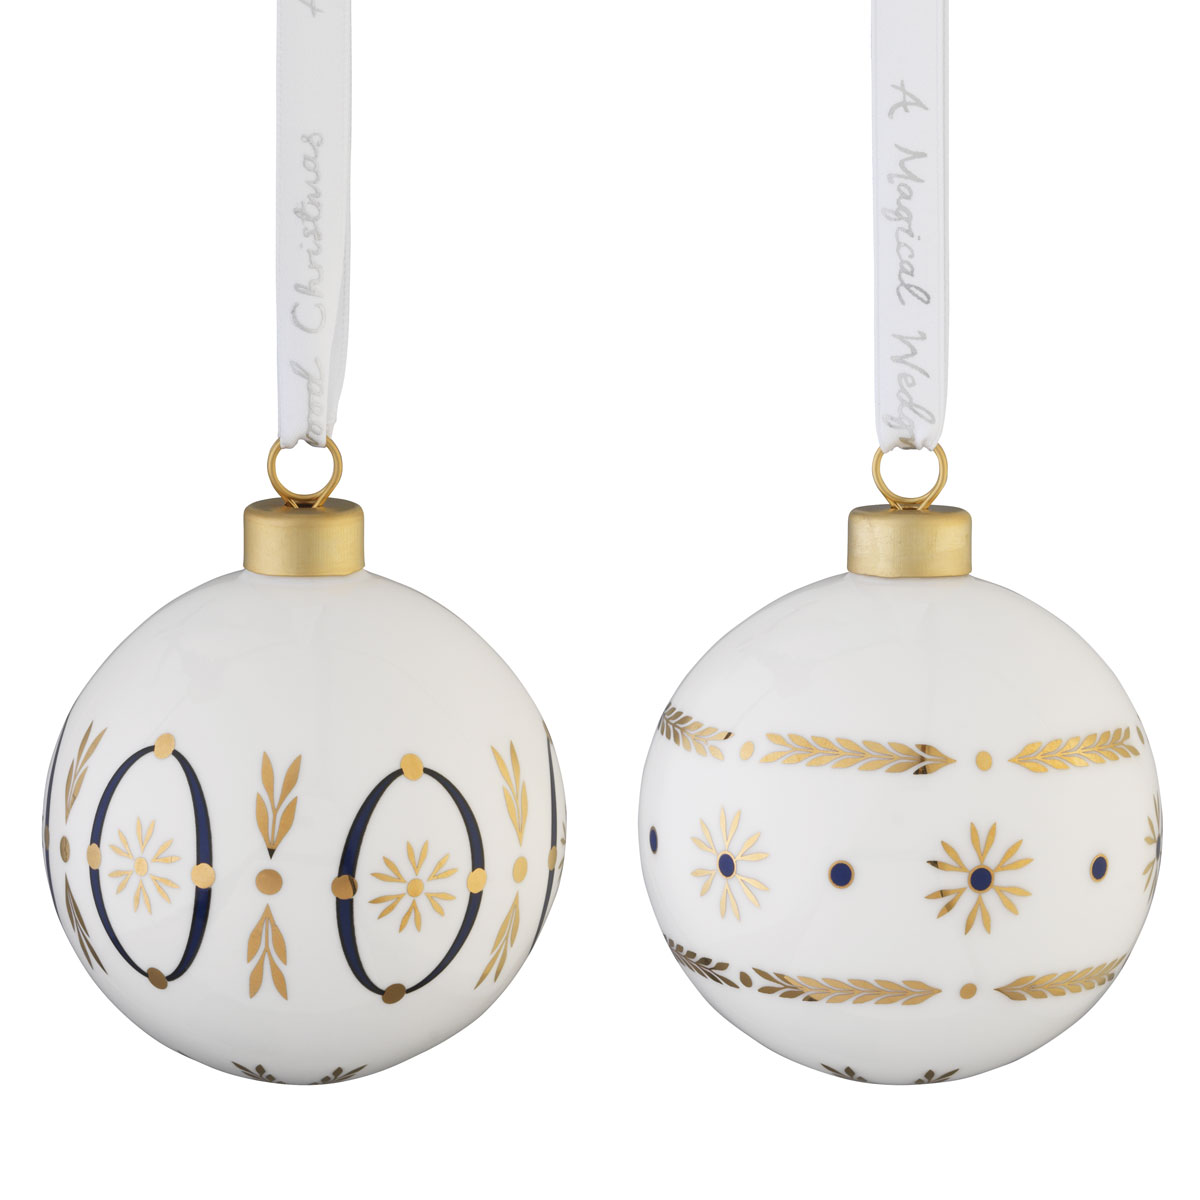 Wedgwood 2021 Renaissance Gold Bauble Ornament Pair